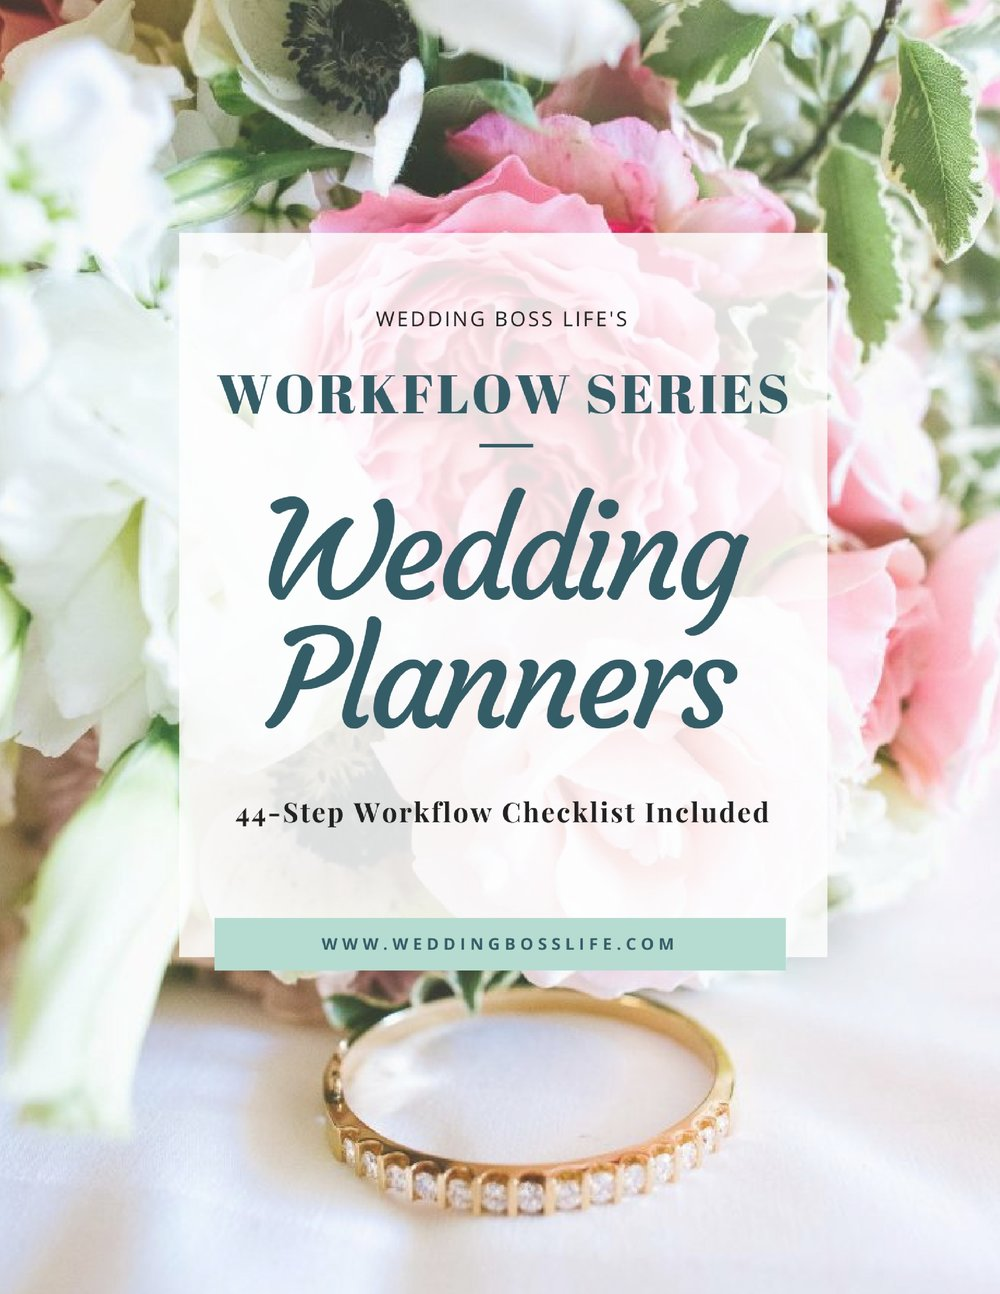 Wedding Planner Workflow